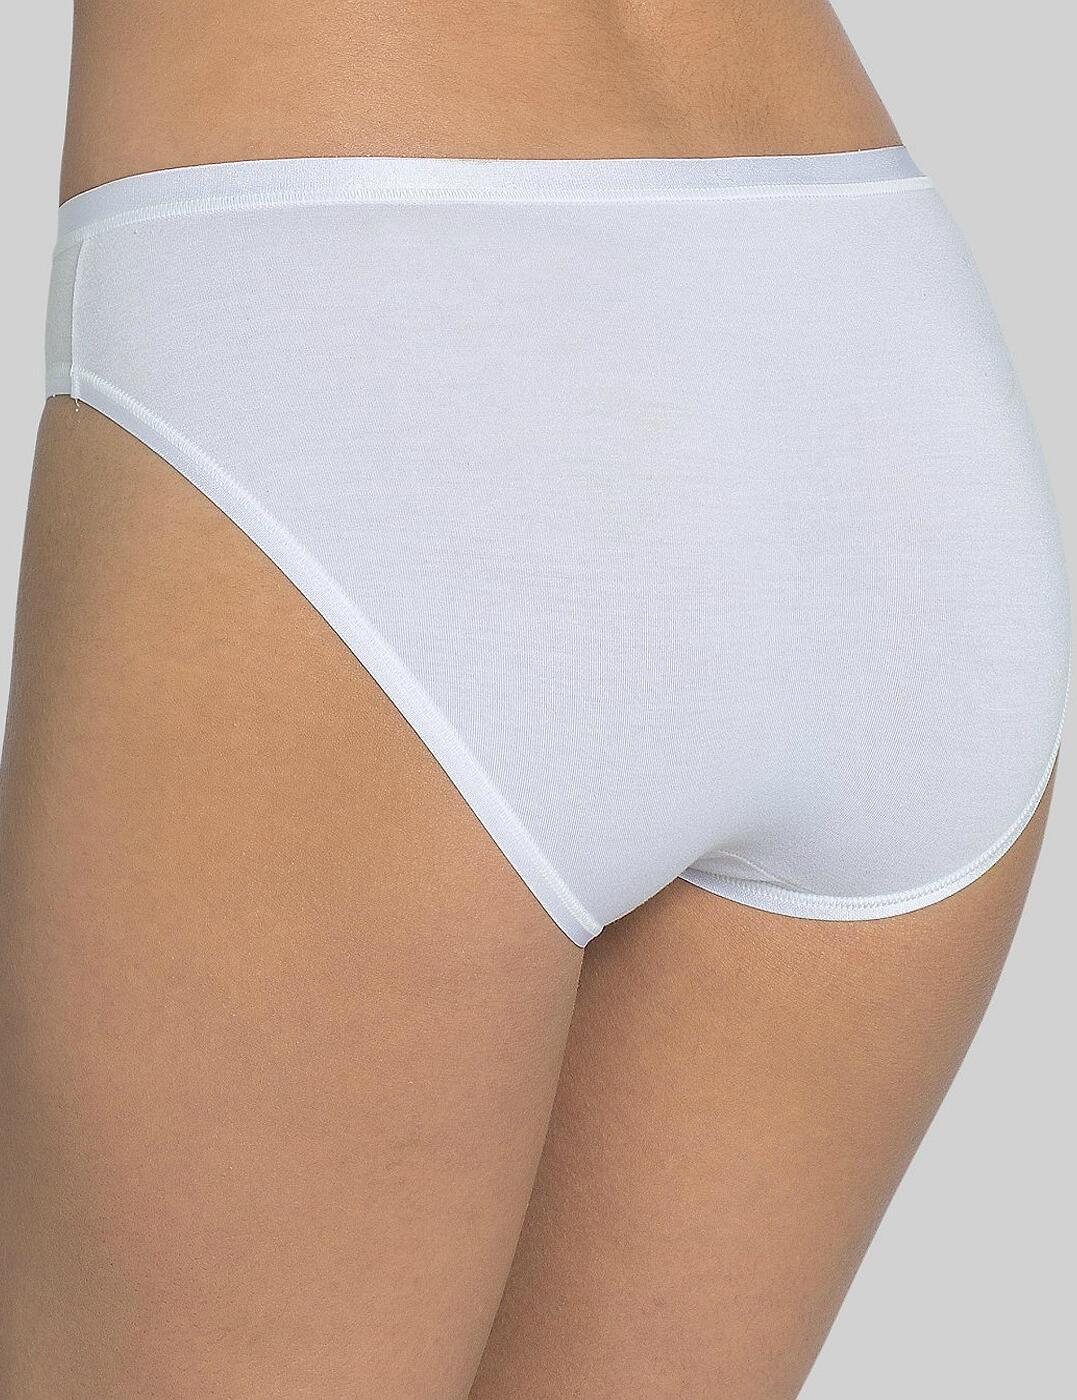 Sloggi Feel Natural Tai Brief Knickers 10150875 Womens Lingerie 2 Pack